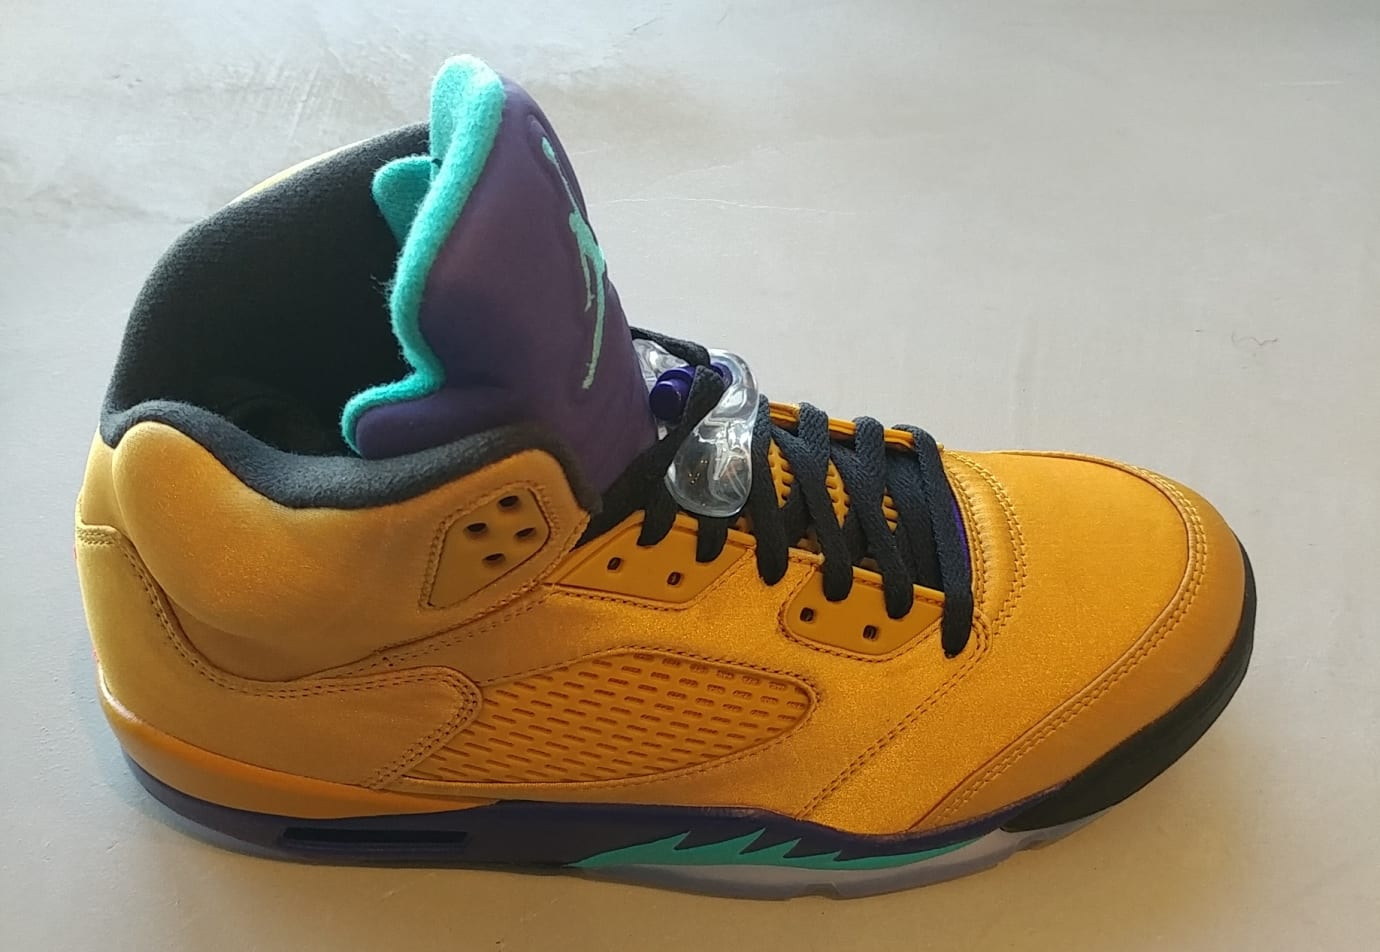 3f3e9646df7 Air Jordan 5 NRG  Fresh Prince  Friends and Family (Lateral) Image via Will  Smith